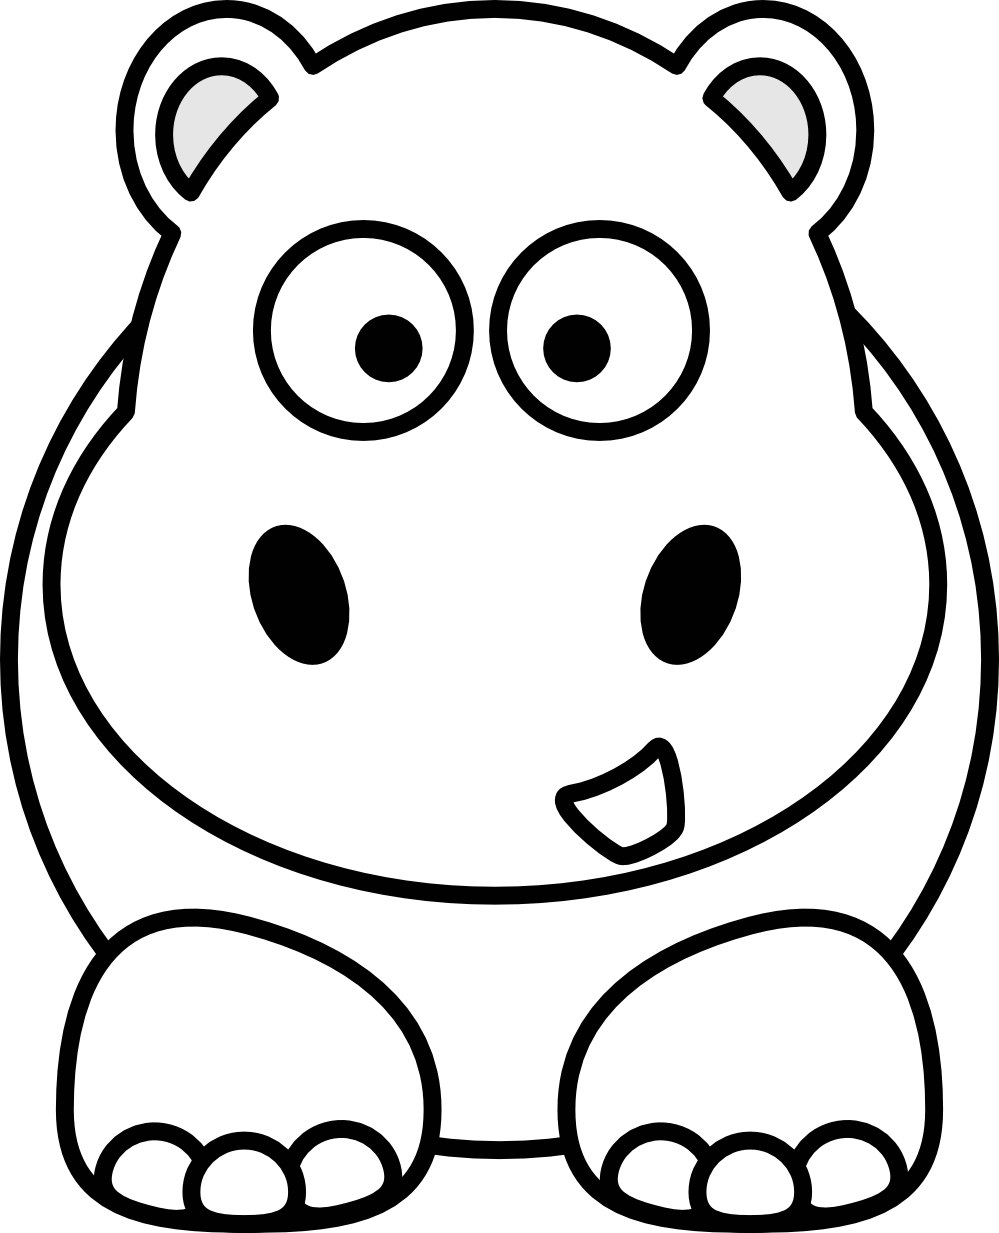 Zoo animal faces clipart black and white graphic transparent download Free Black And White Cartoon Animals, Download Free Clip Art ... graphic transparent download